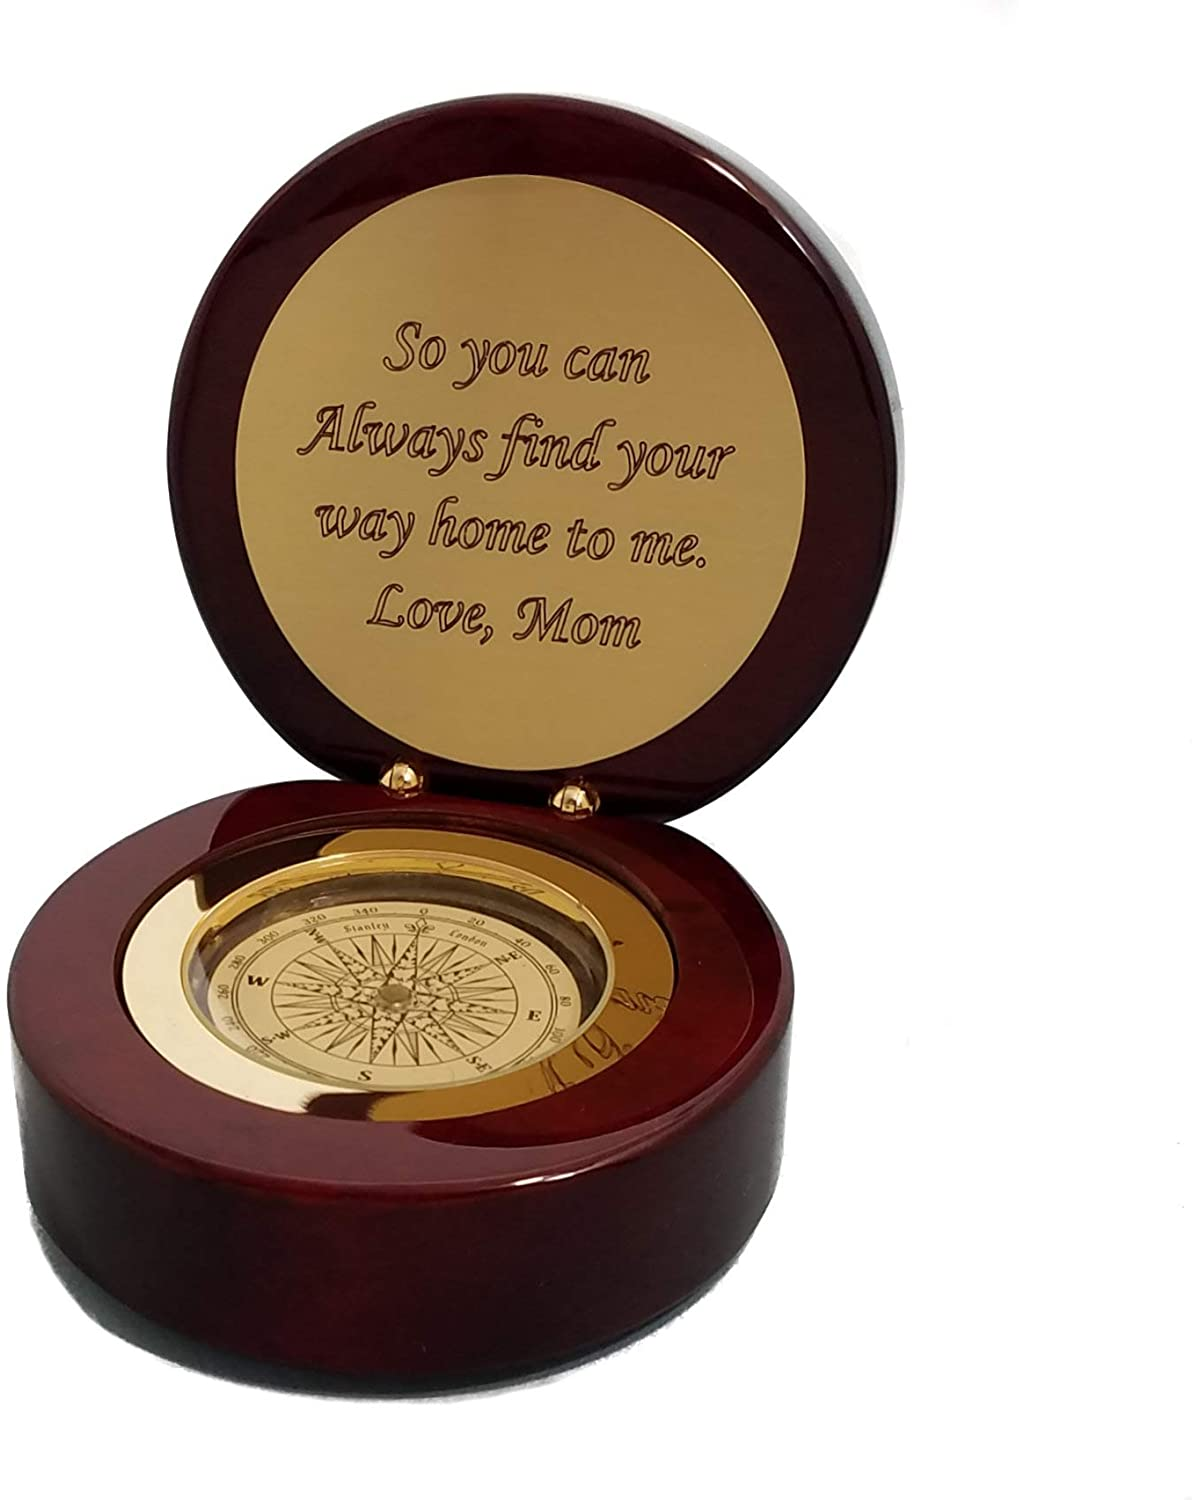 Stanley London Engravable Round Executive Desk Compass in Piano Finish Case - for Graduation, Retirement, Birthday, Christmas, Anniversary, Men, Women, Him, Her, Husband, Dad, Son, Boyfriend